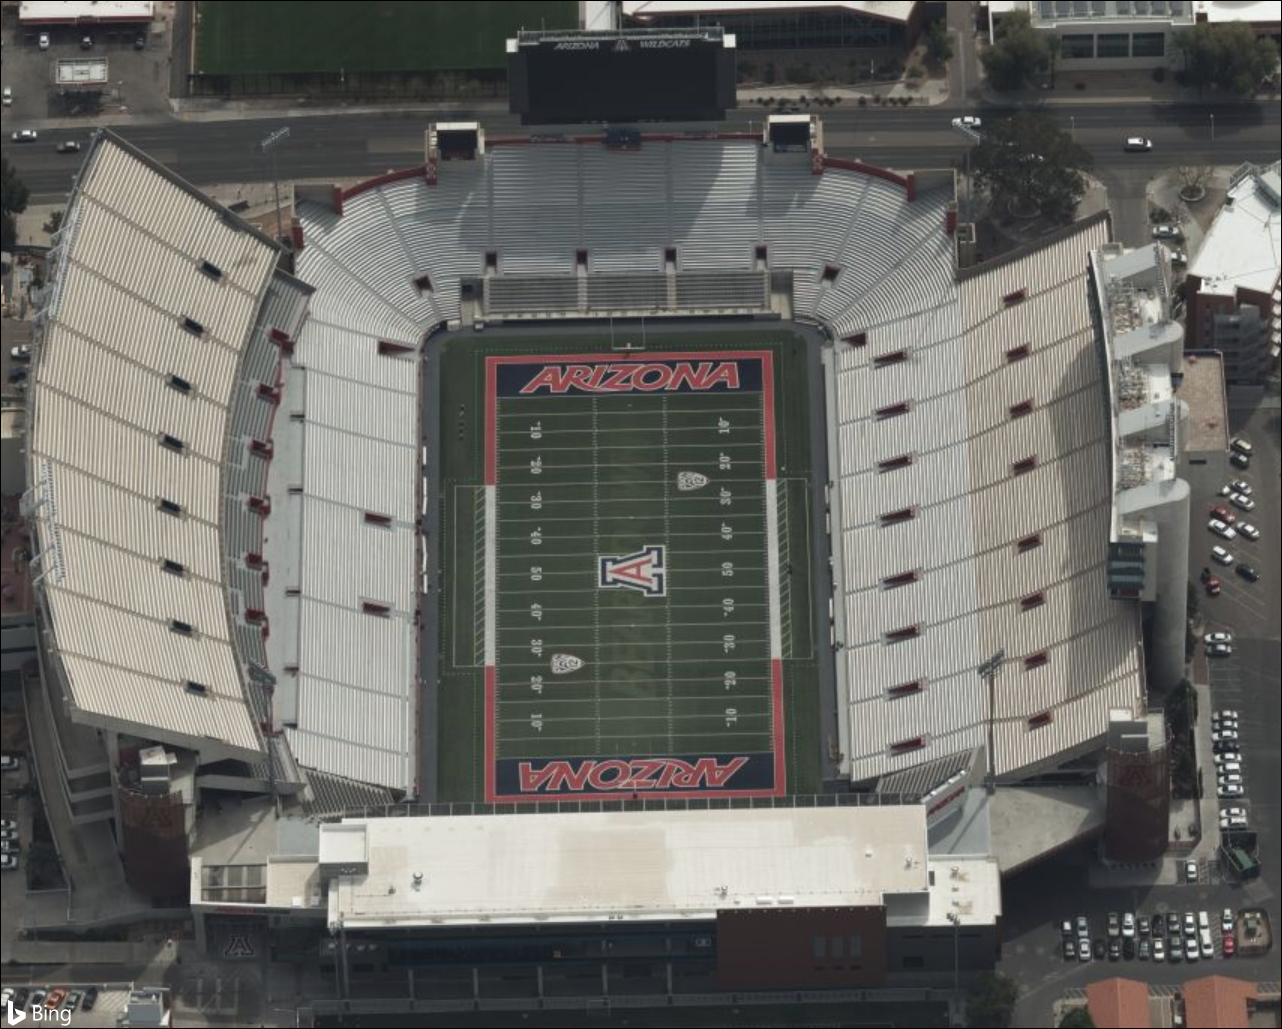 Bing Maps Released New Bird's Eye Imagery UniversityofArizonaStadium.png